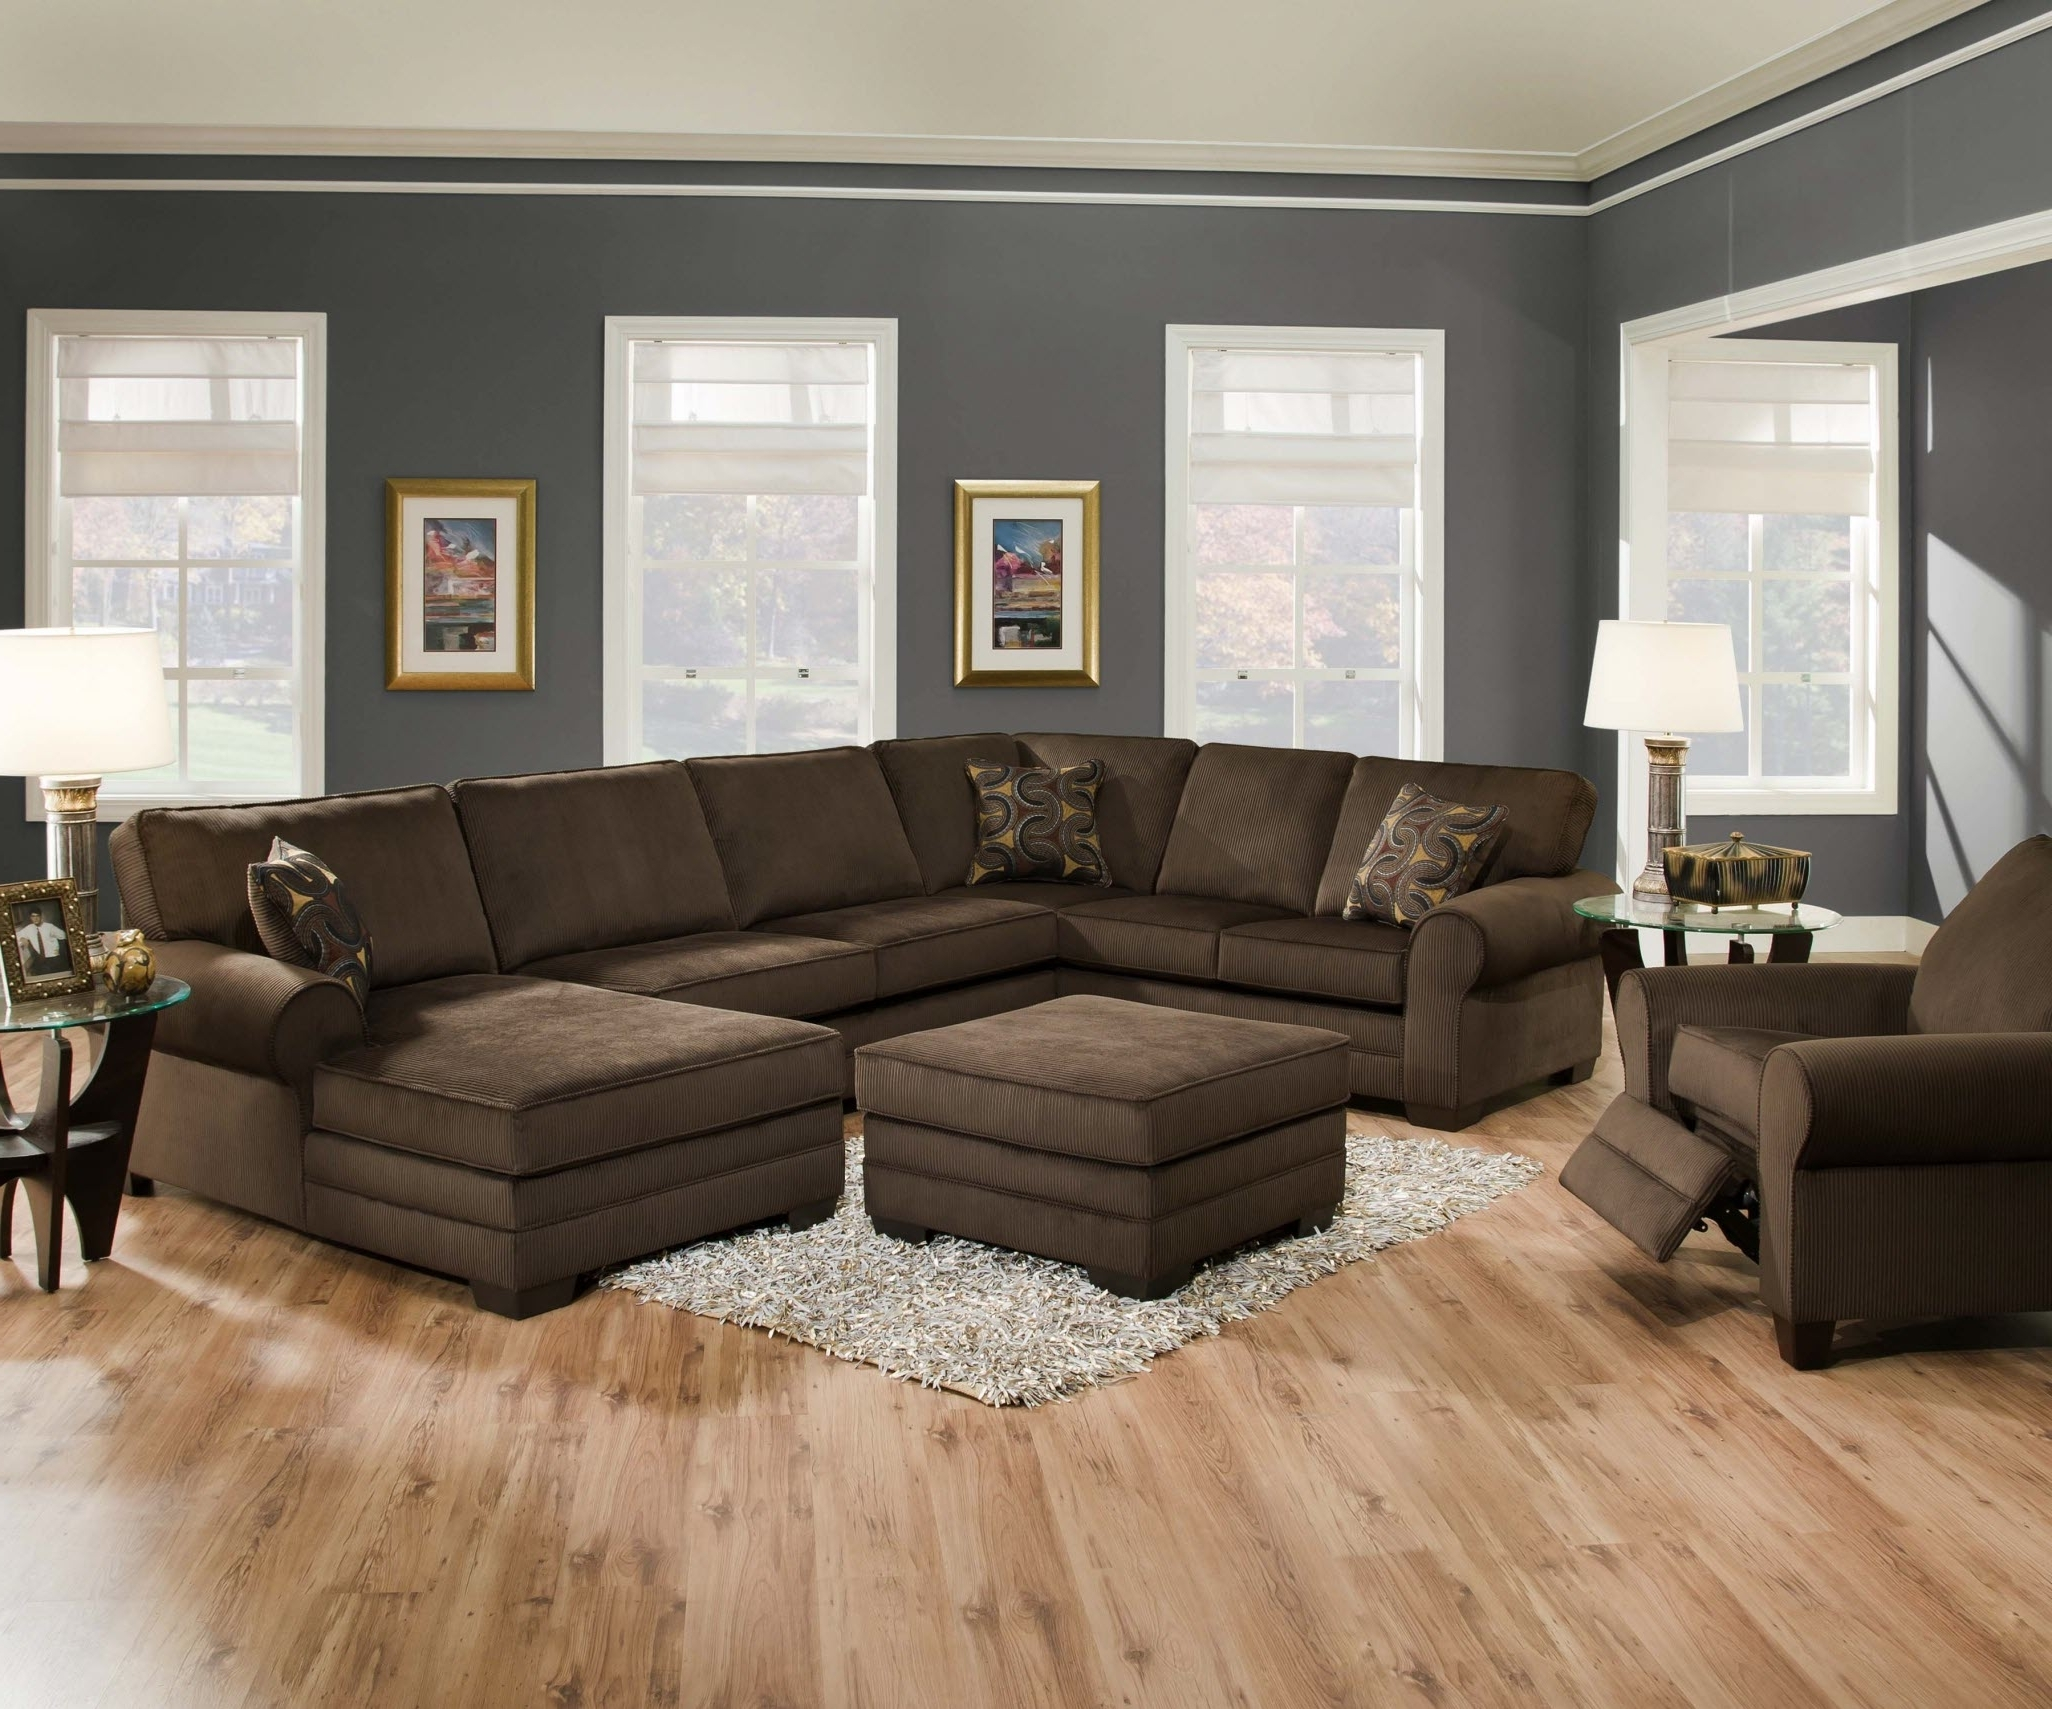 Designssimmons – Simmons Deluxe Beluga Sectional In Widely Used Simmons Chaise Sofas (View 5 of 20)